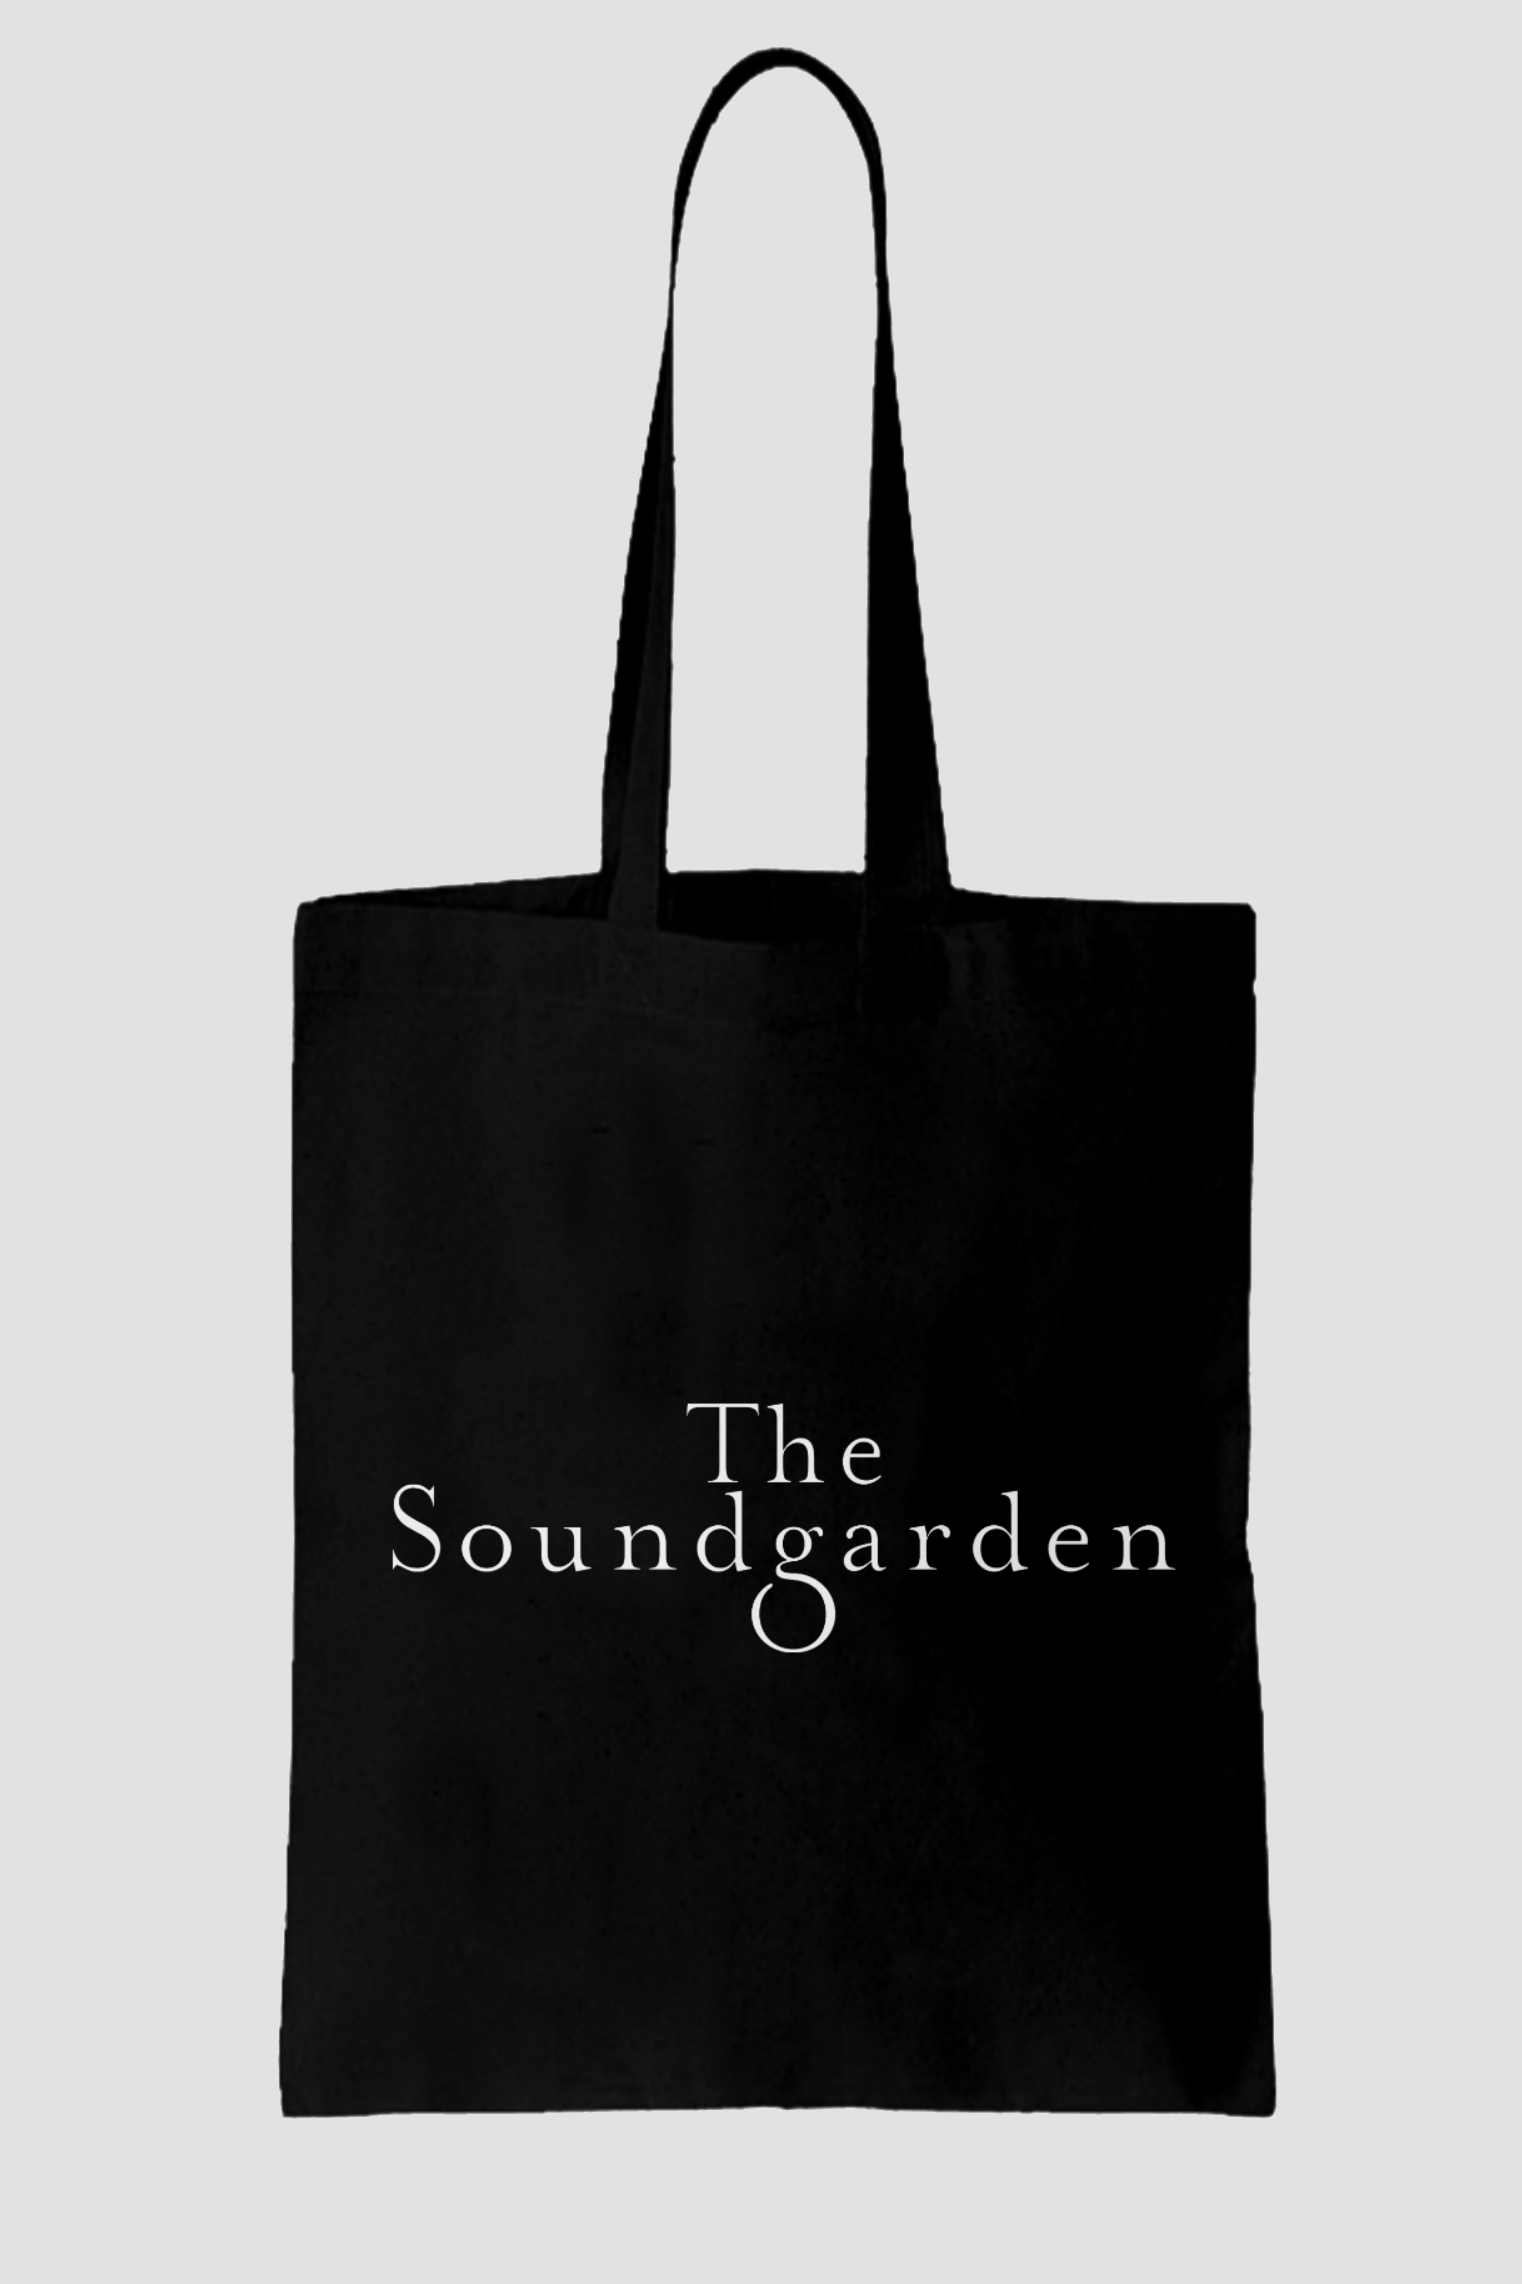 SG TOTE BAG MOCKUP (FOR STORE).png